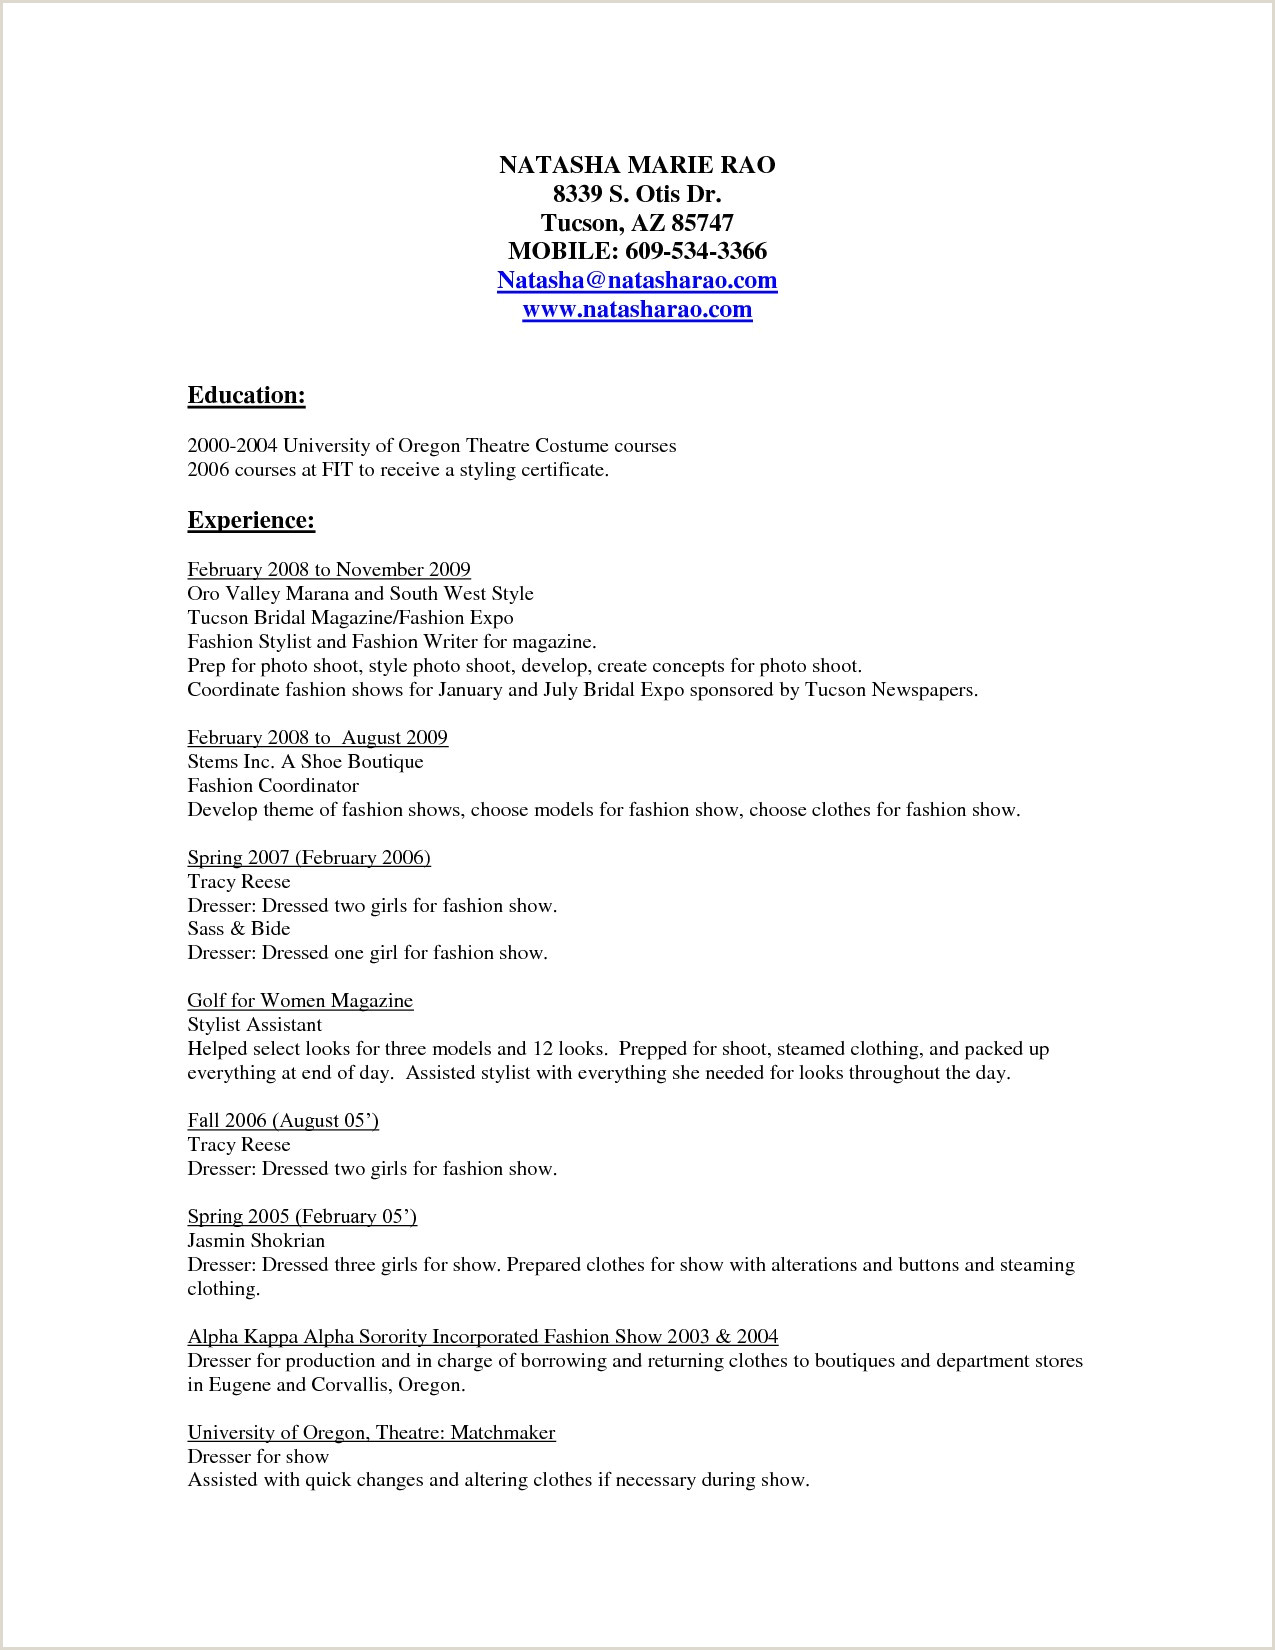 Freelance Hair Stylist Resume 10 Freelance Stylist Resume